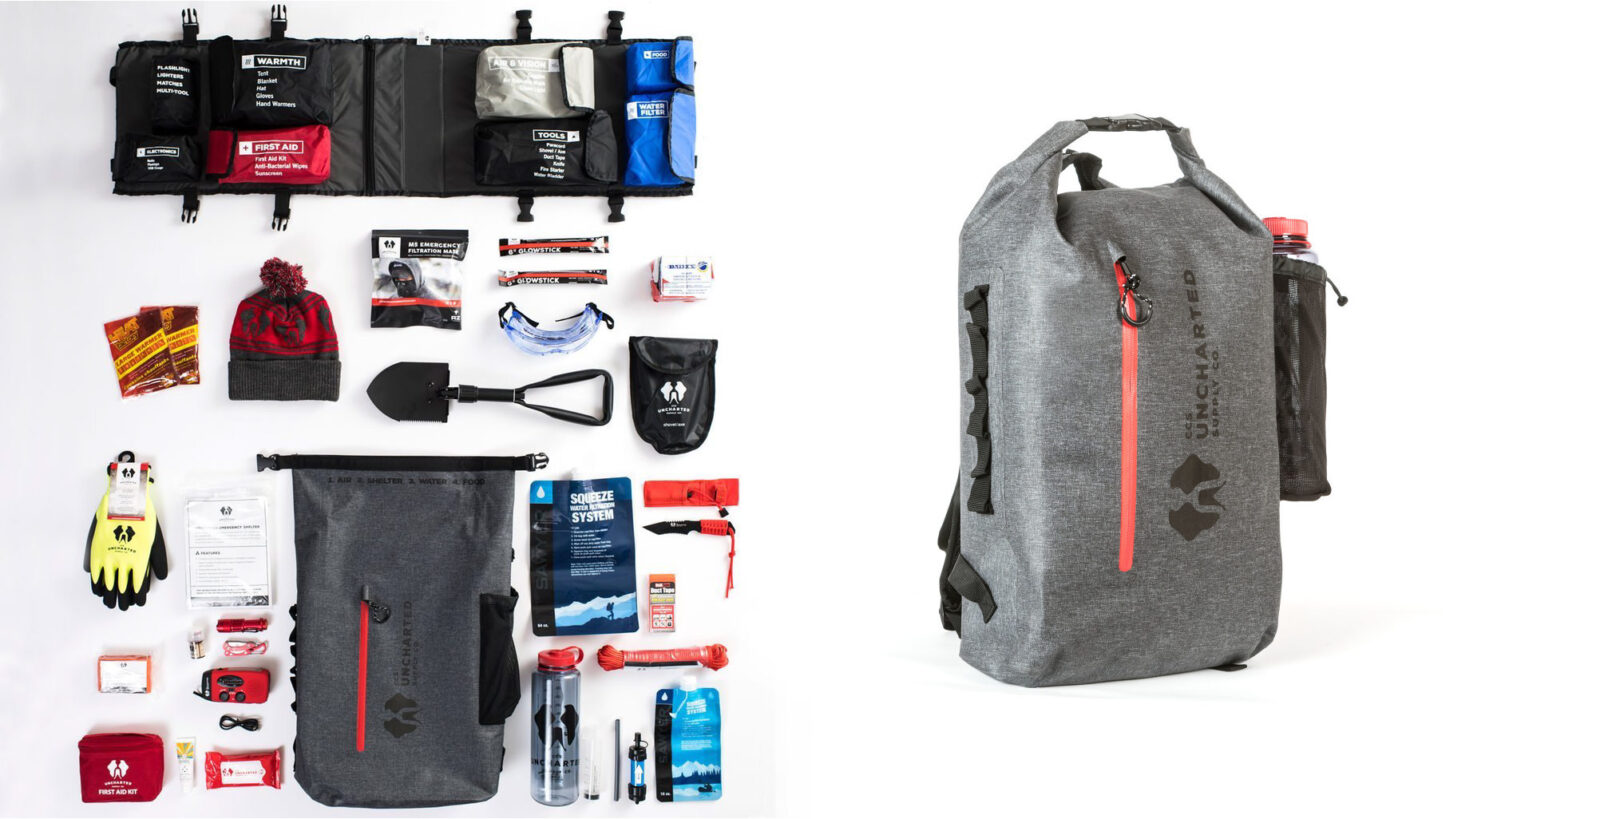 The Seventy2 Survival System - A Bug Out Bag For The 21st Century